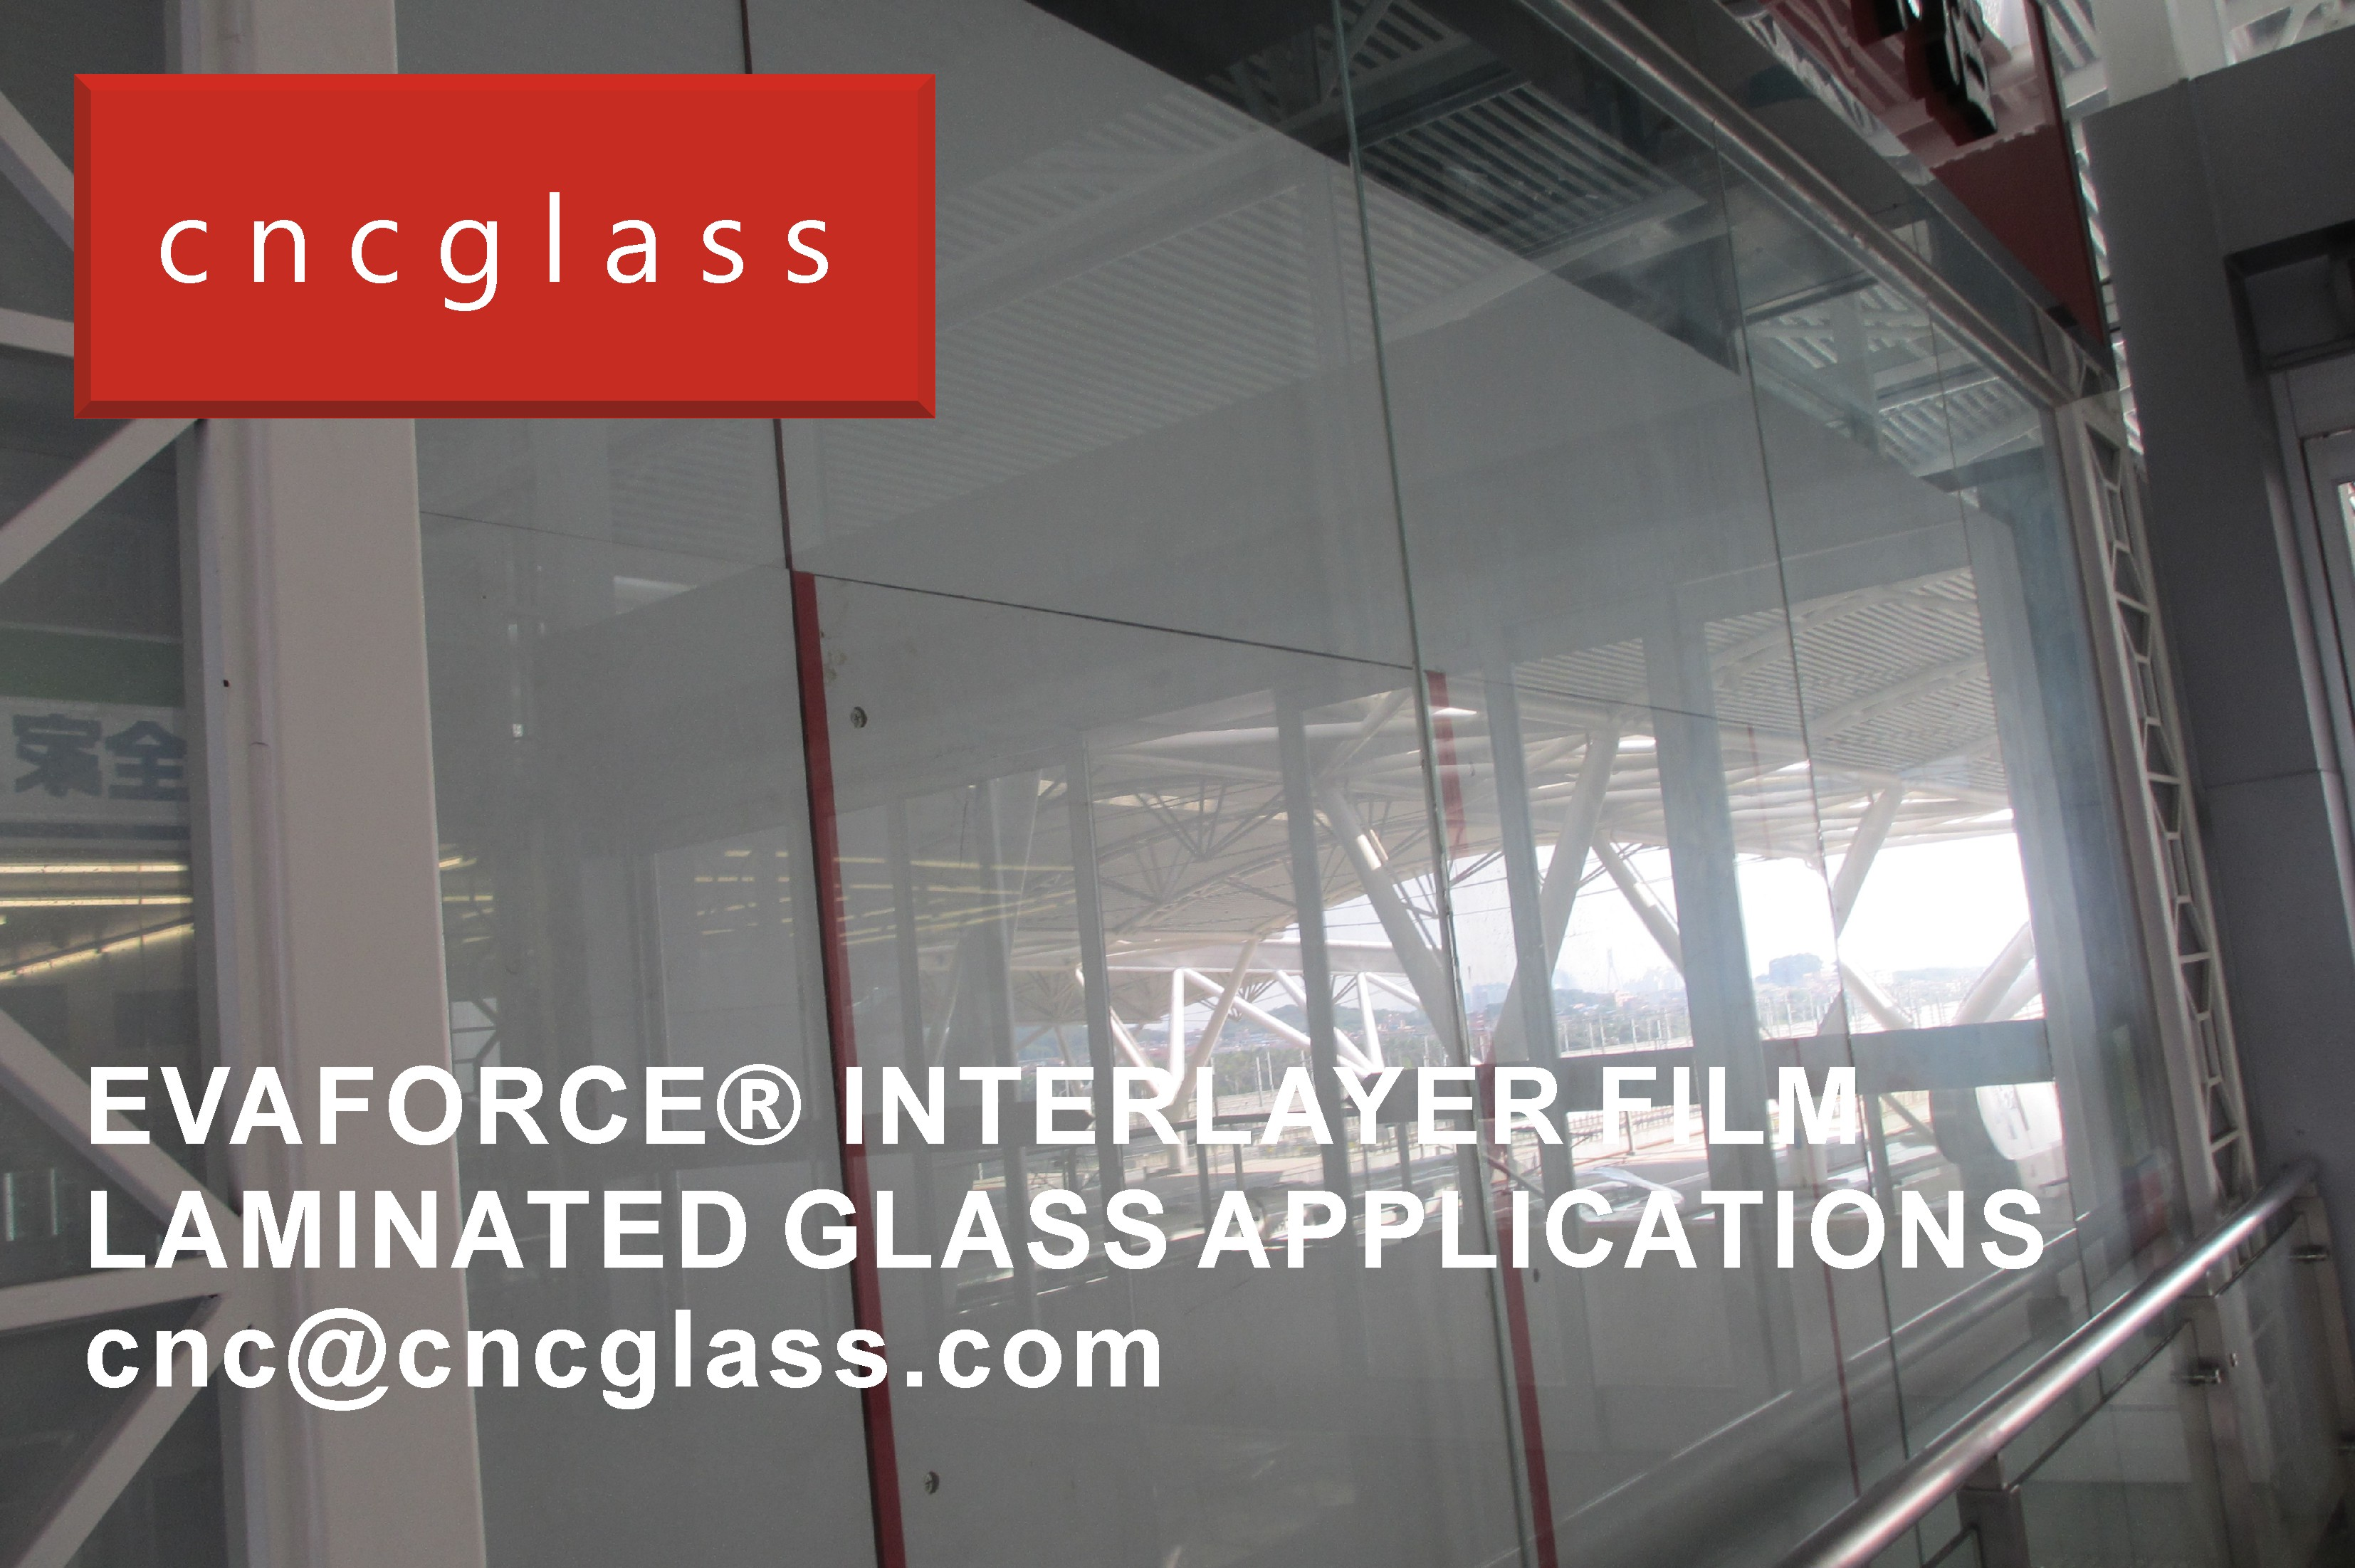 EVAFORCE INTERLAYER FILM LAMINATED GLASS APPLICATIONS (8)